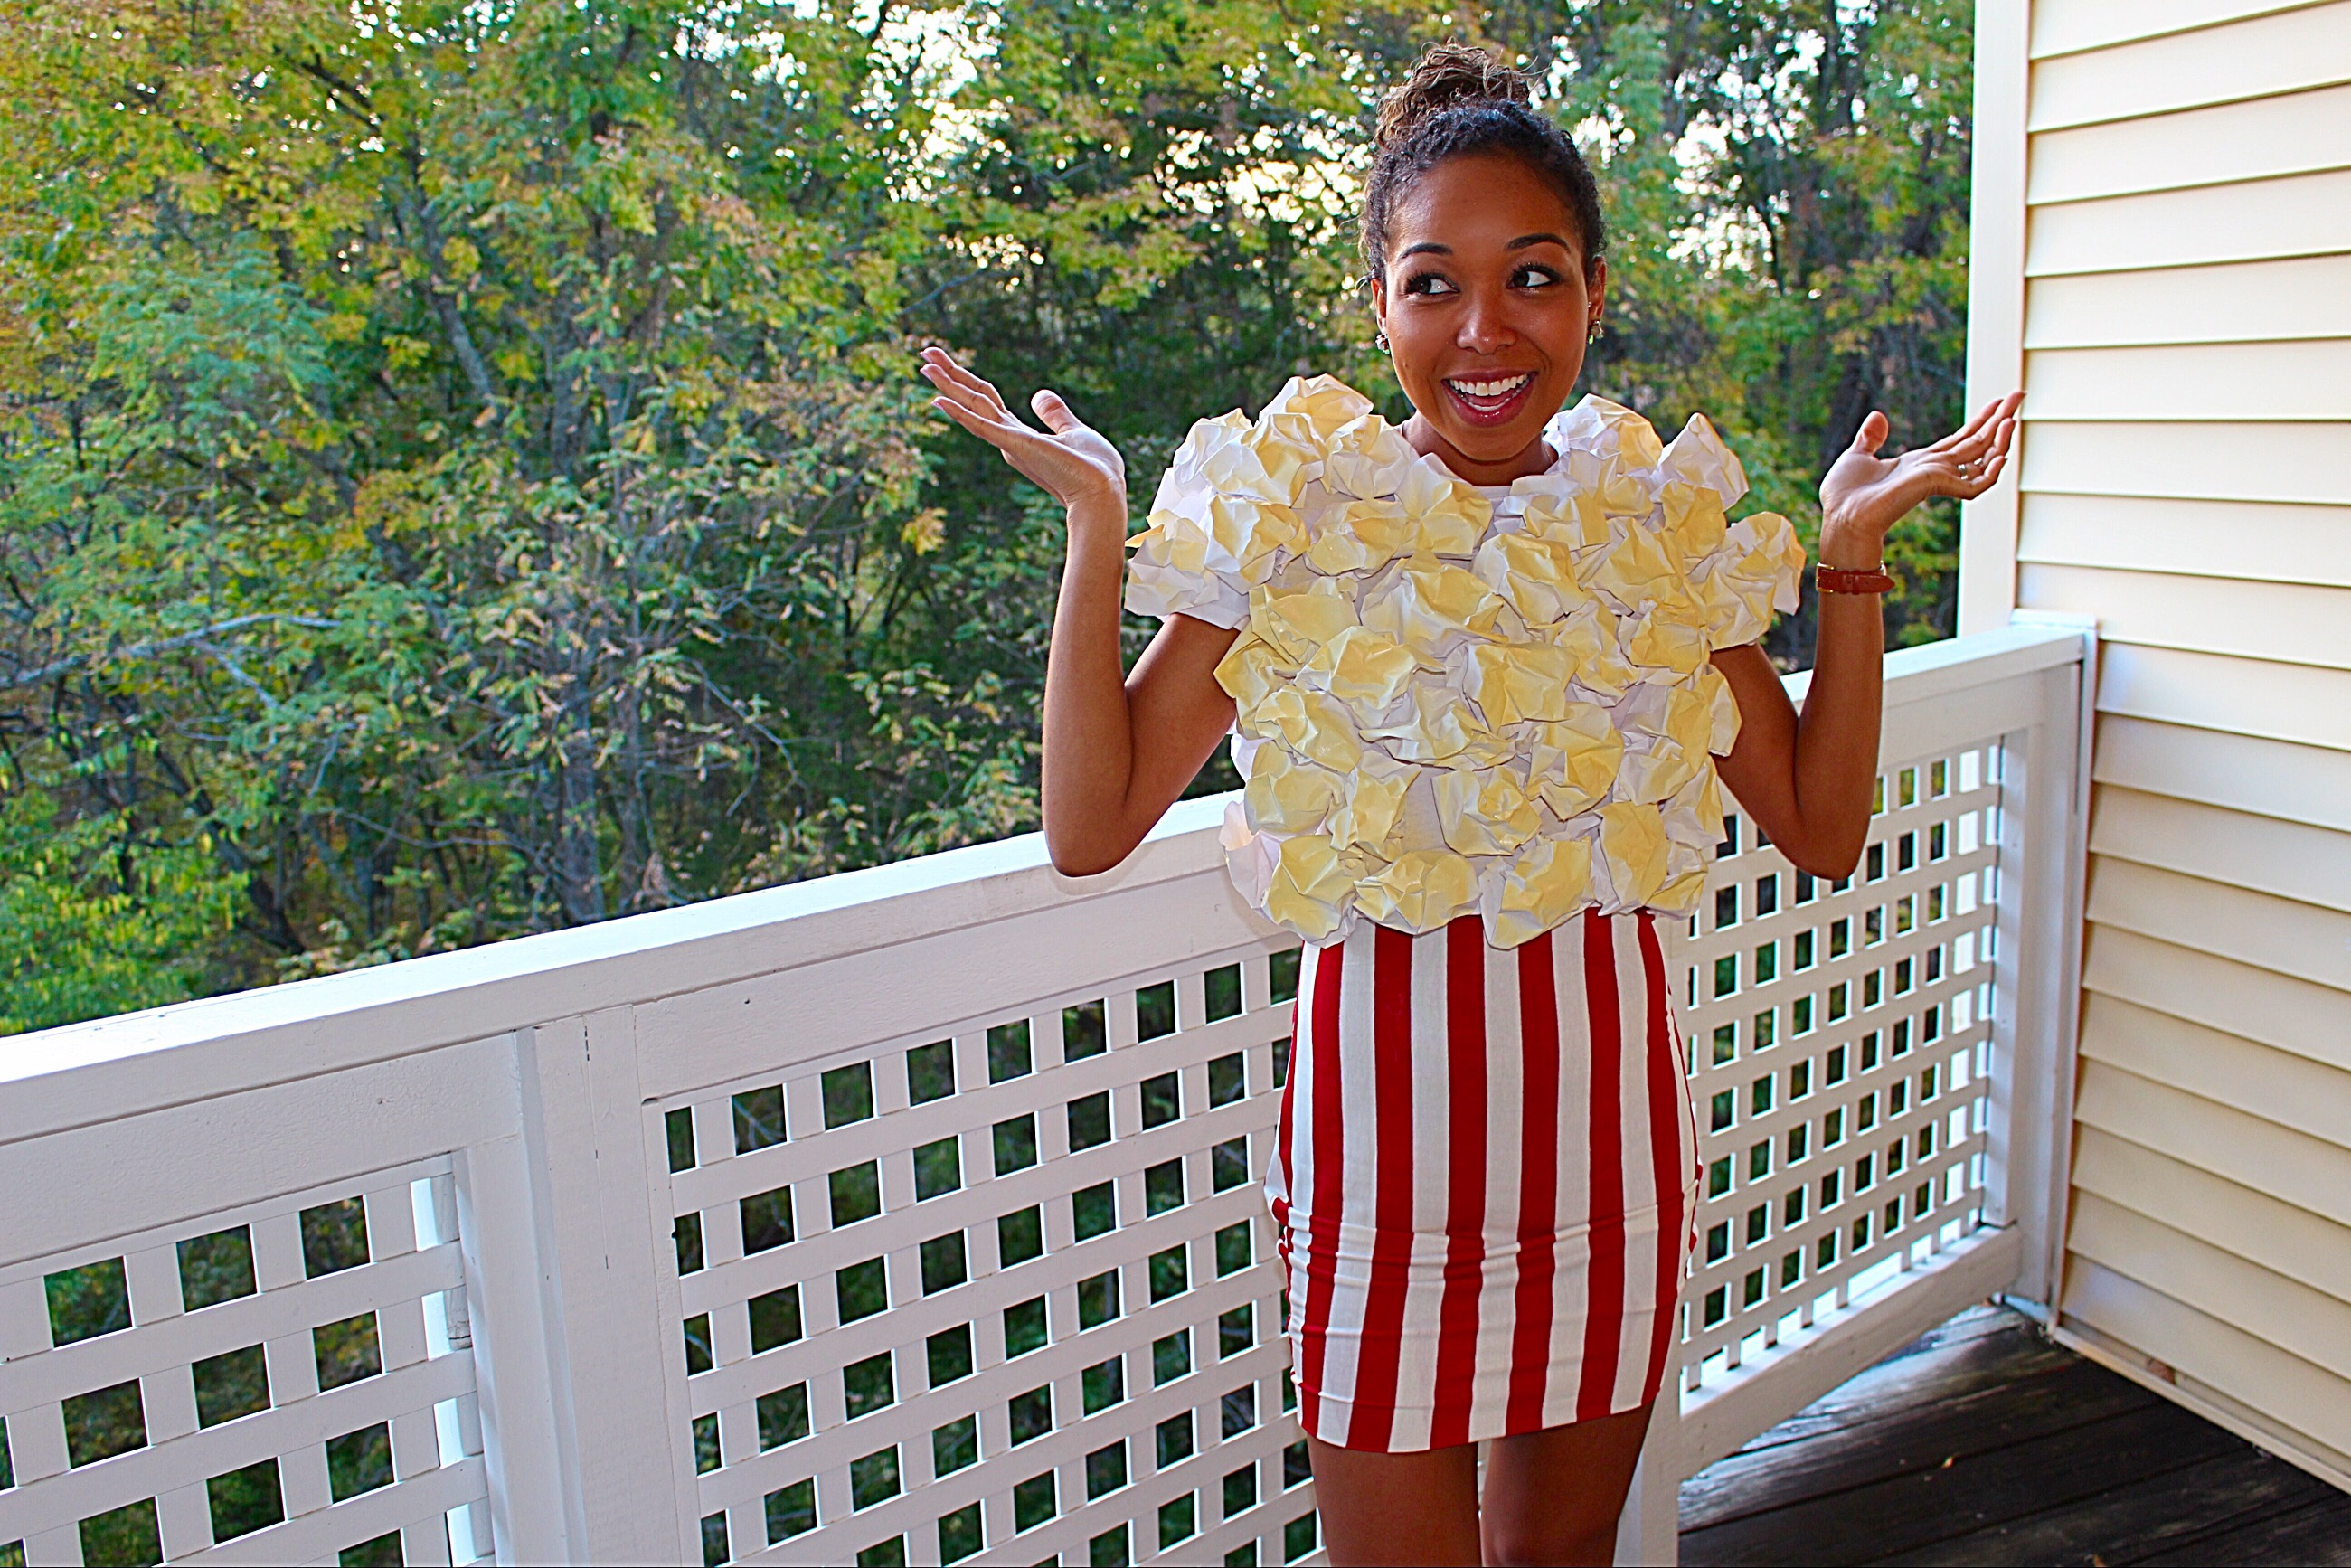 This year I am going to be POPCORN *excited face* not only is it one of my favorite snacks it is also very addicting. Every time I go to the movies or ...  sc 1 st  Pleats Scalloped u0026 Lace & DIY: Popcorn Halloween costume u2013 Pleats Scalloped u0026 Lace